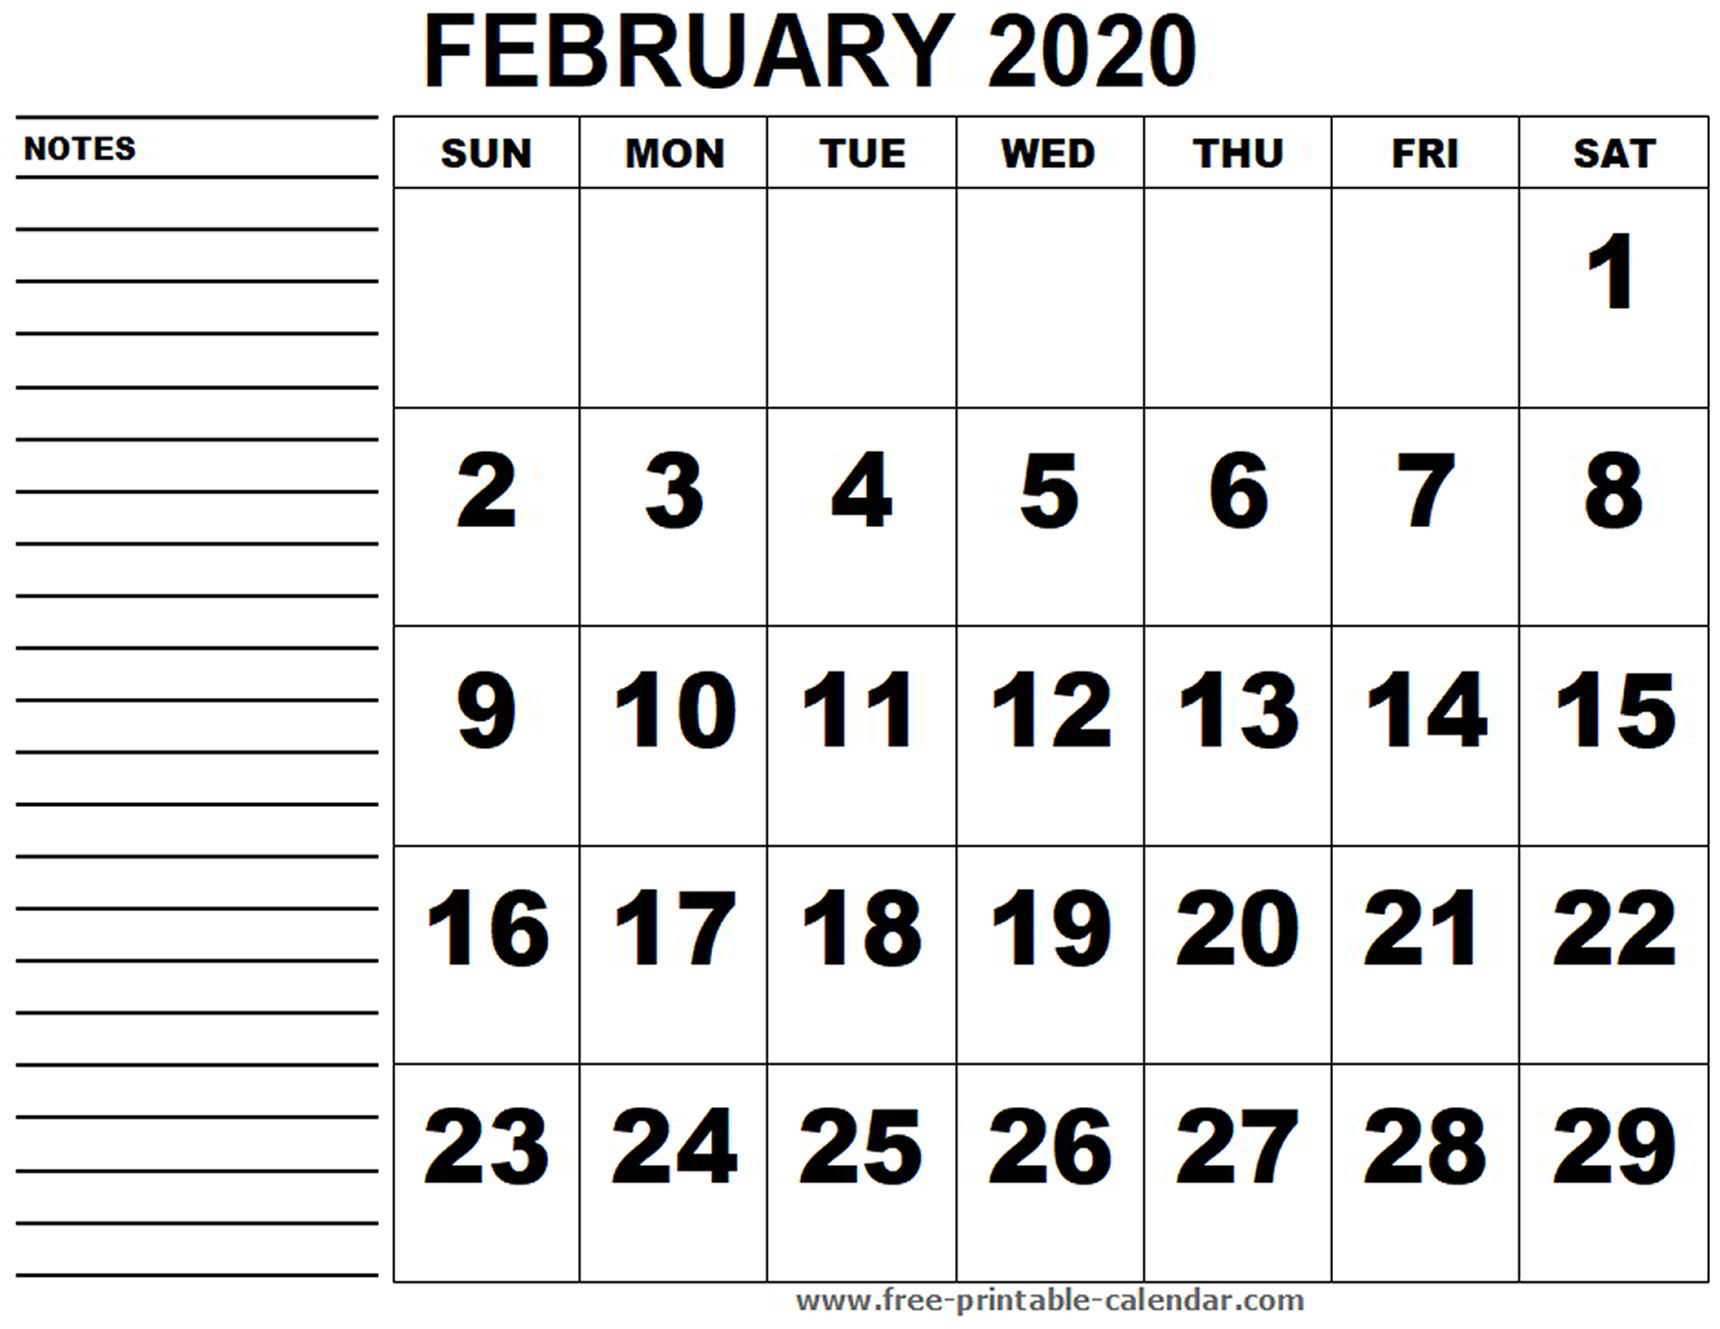 Printable Calendar February 2020 - Free-Printable-Calendar in 2020Free Printable Calendars Without Downloading